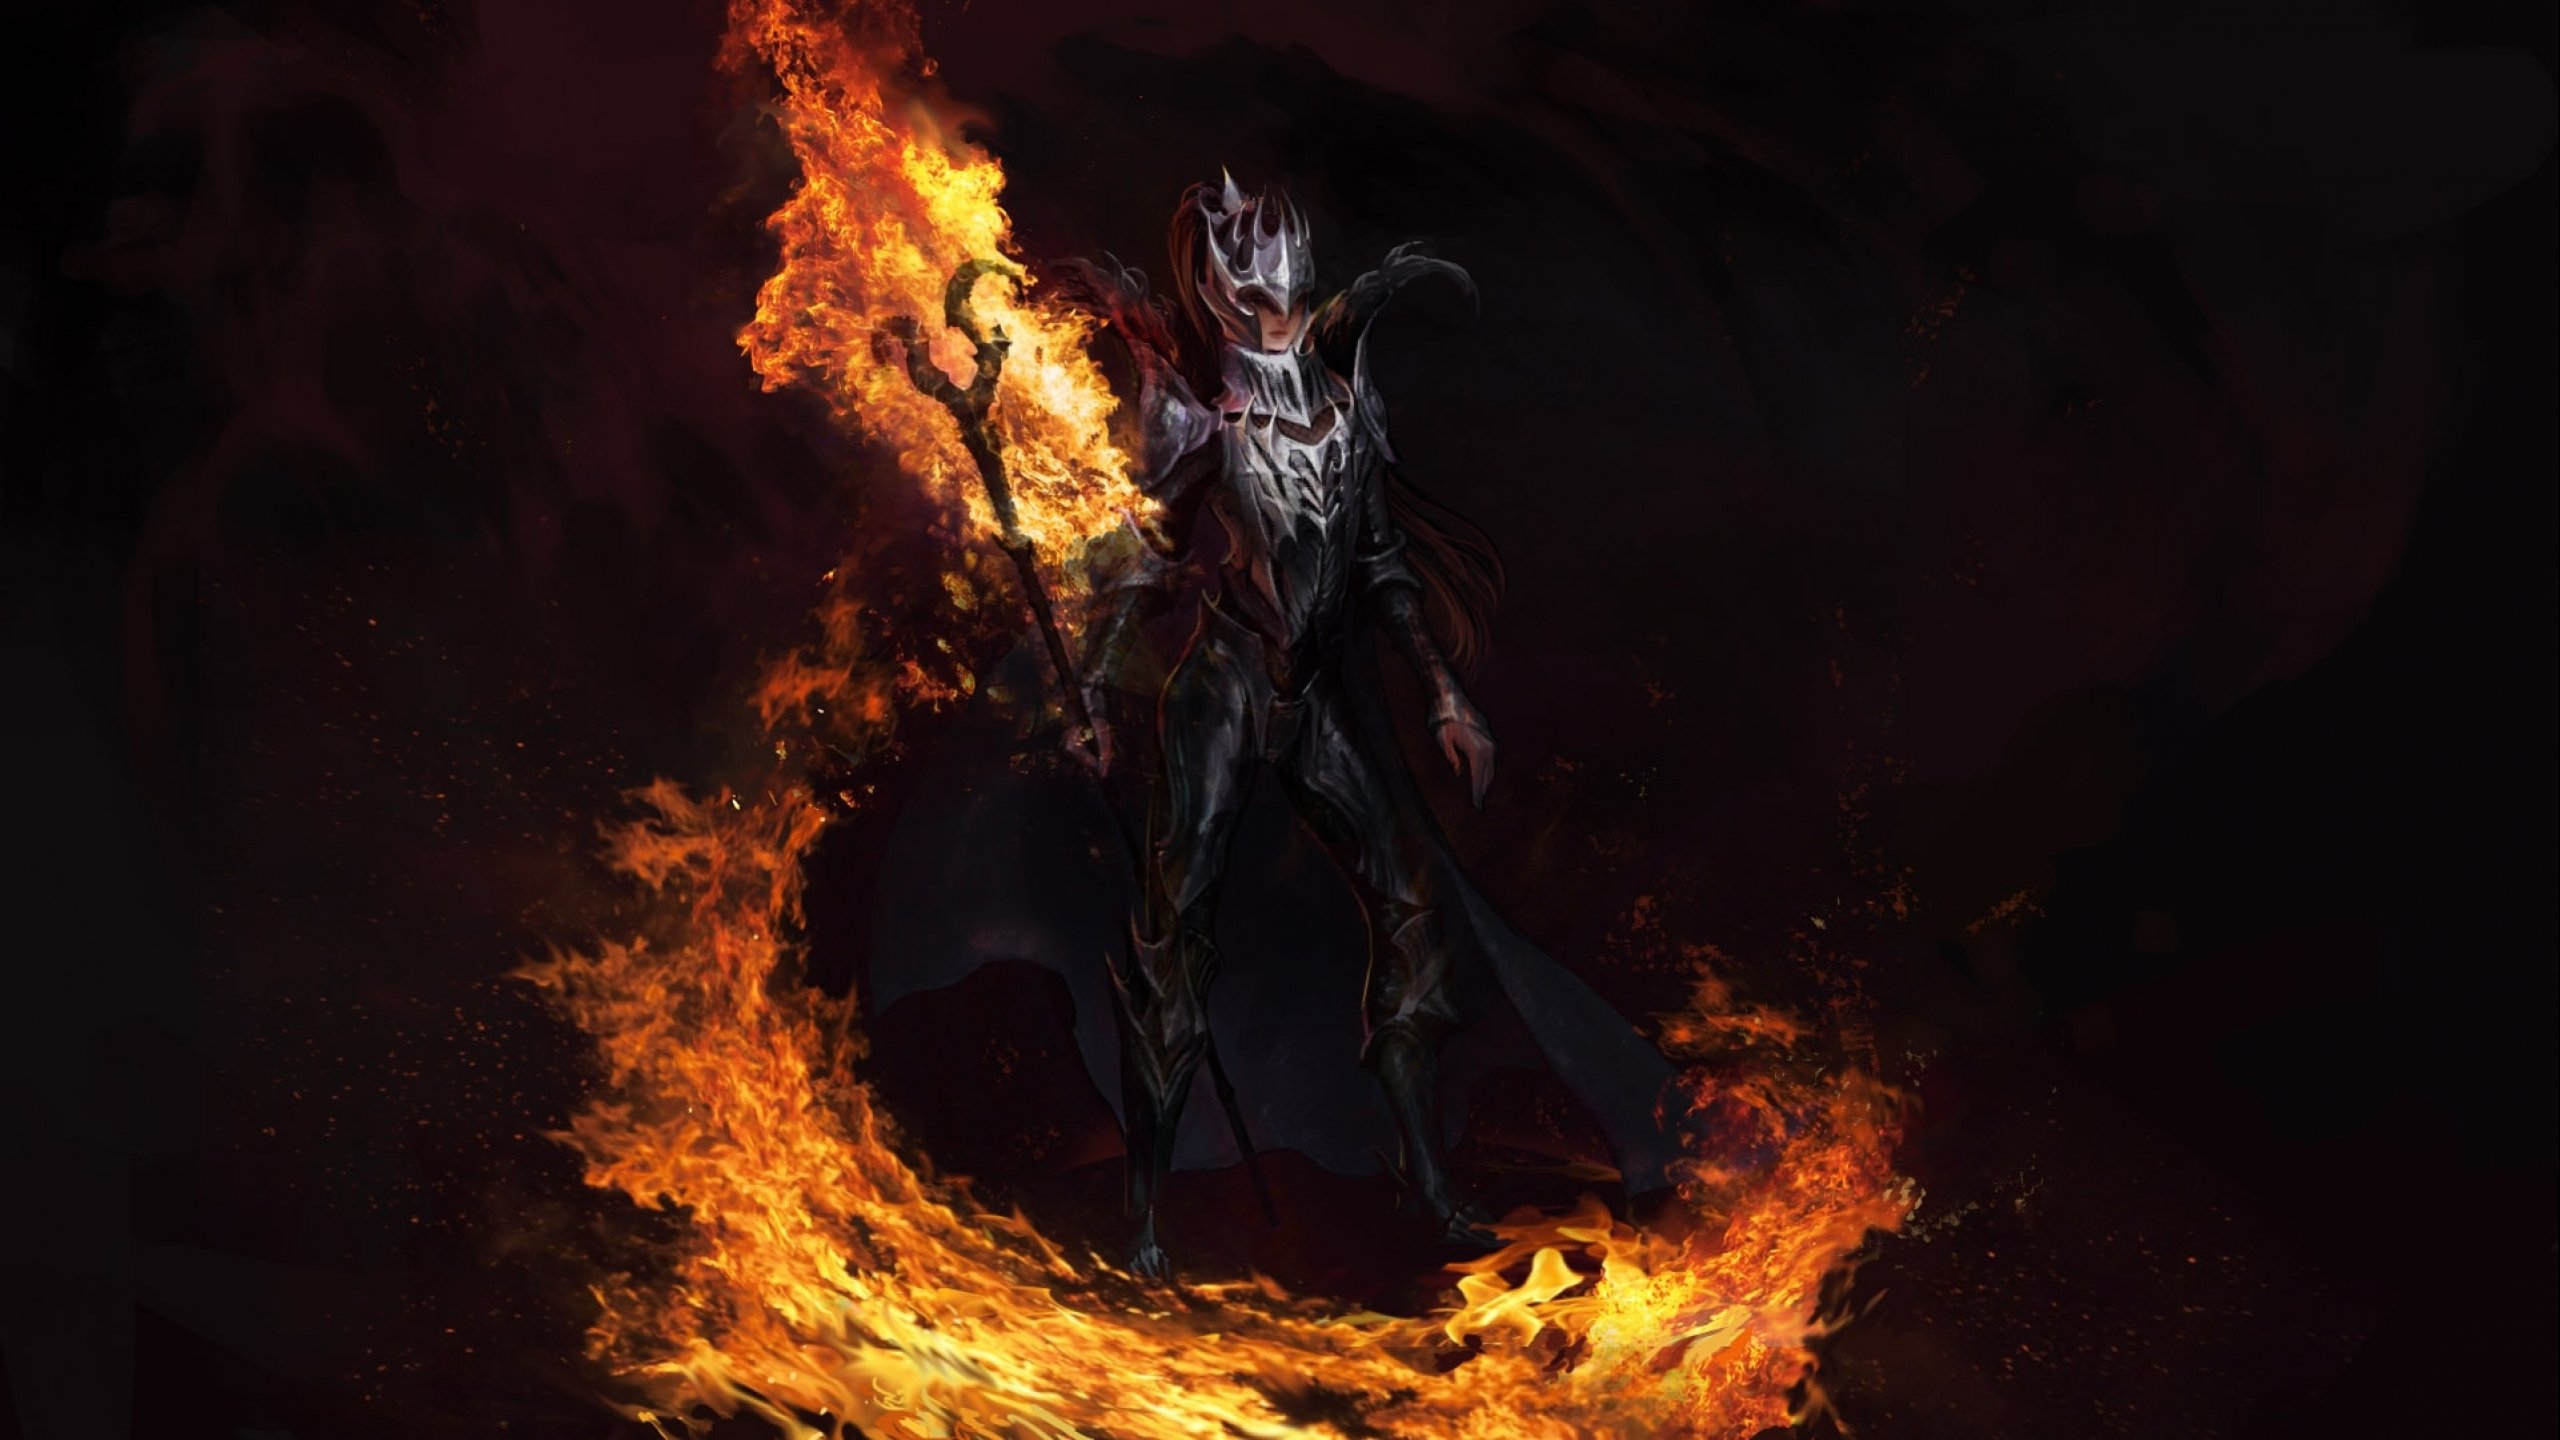 Path Of Exile Wallpaper: PATH Of EXILE Fantasy Mmo Rpg Action Fighting Exploration